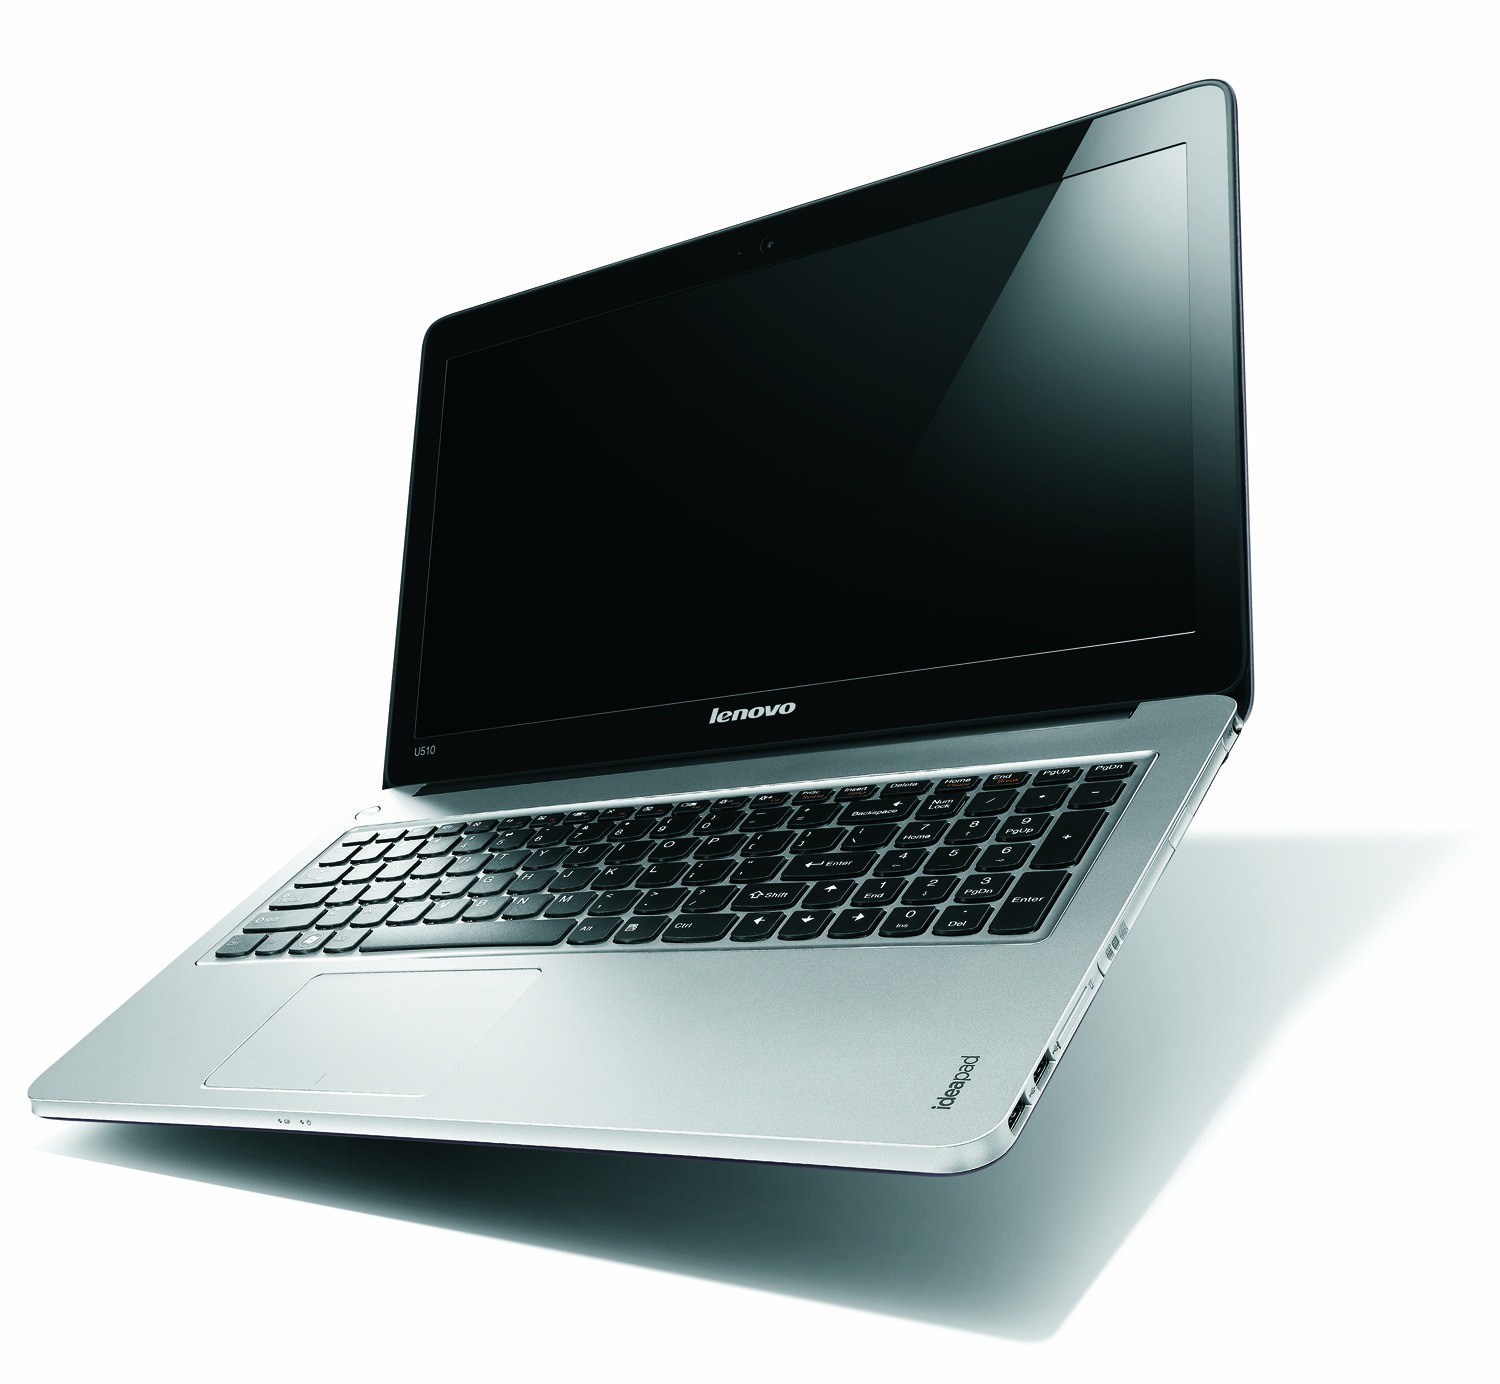 Lenovo Announces Windows 8 Ultrabooks, AllinOne PCs  Bonnie Cha